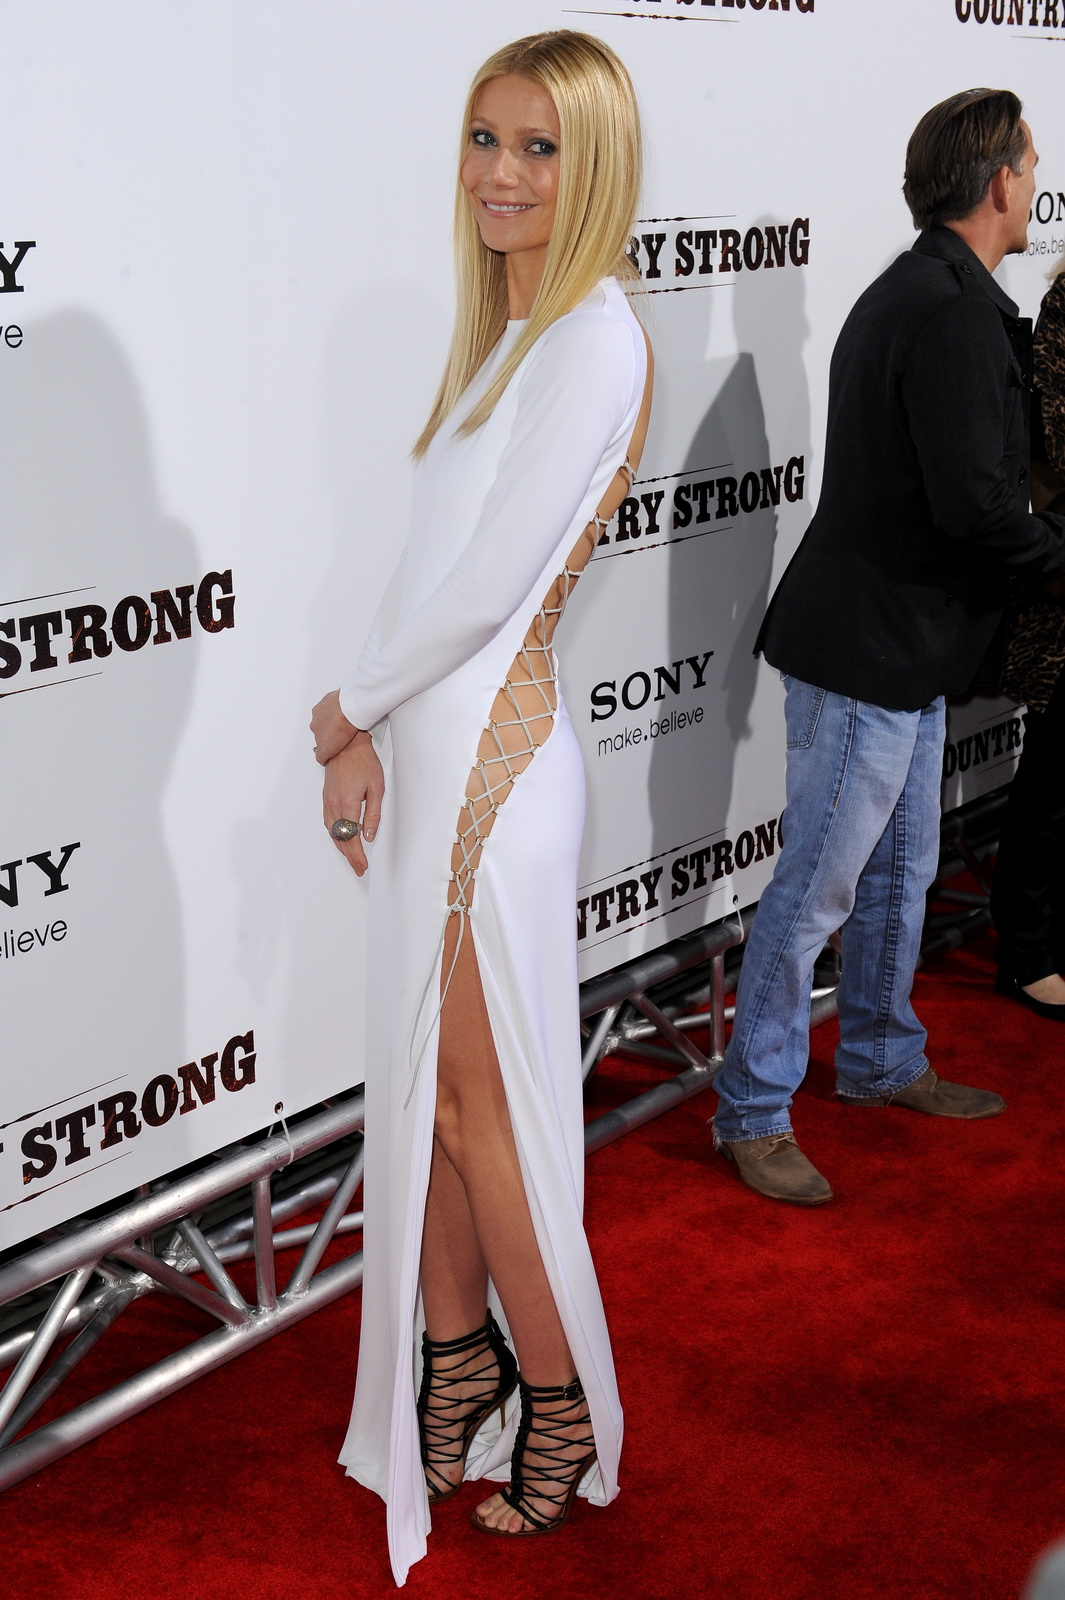 Gwyneth Paltrow Without Panties And Bra Country Strong Screening In